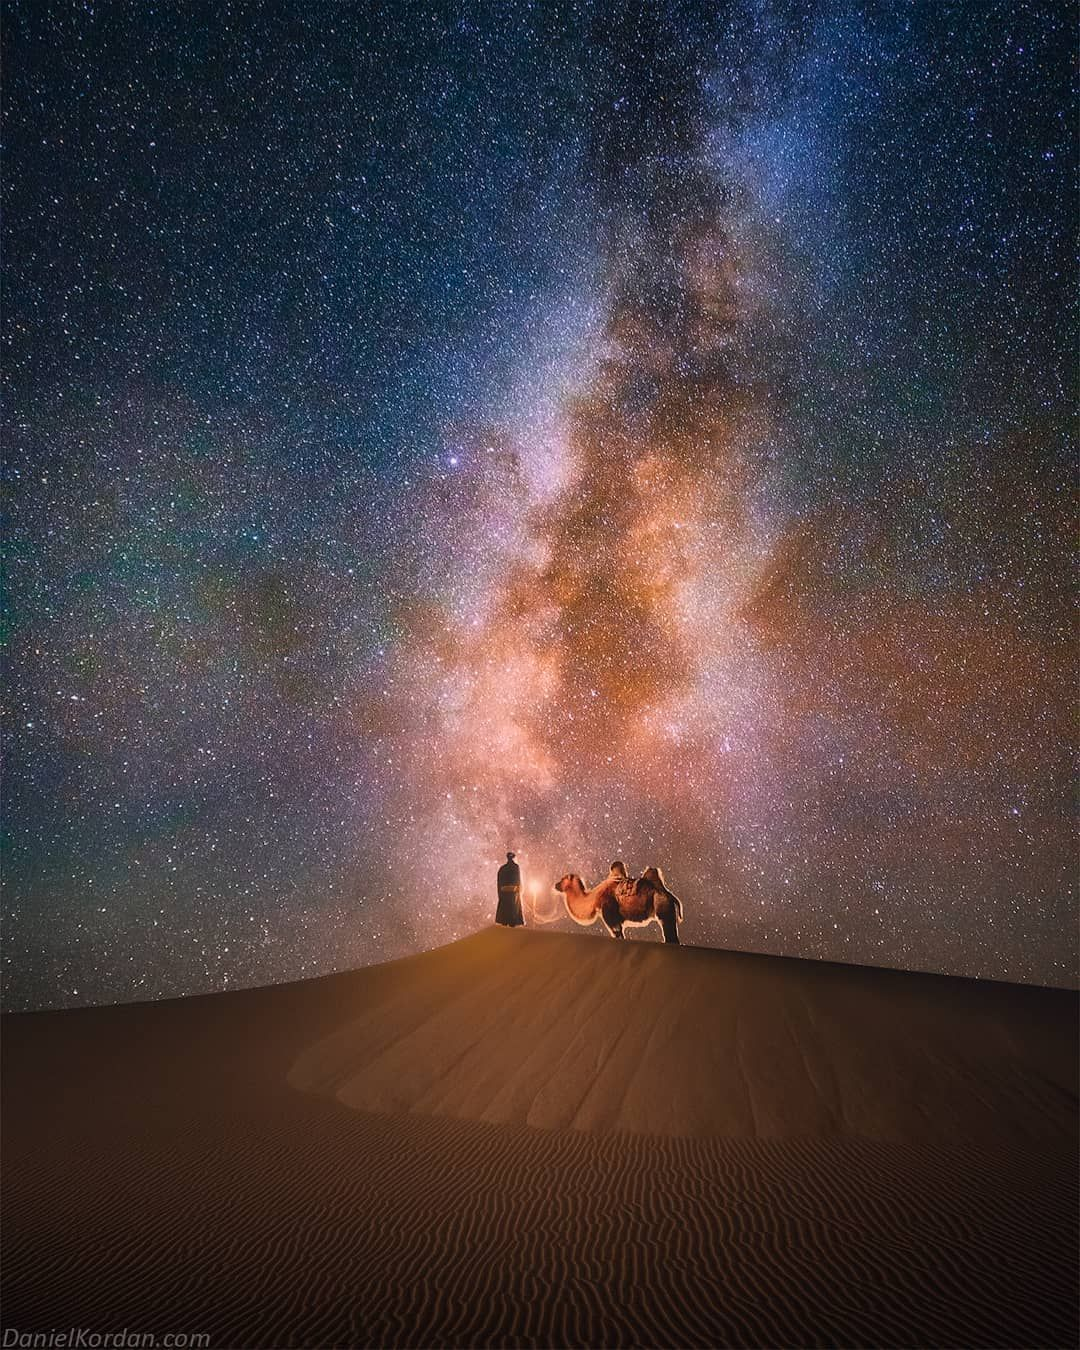 I Continue Series Of Night Images From Gobi Desert It S Definitely On My Top 3 Places List Of Most Beautif Beautiful Night Sky Nature Travel Photography Tours